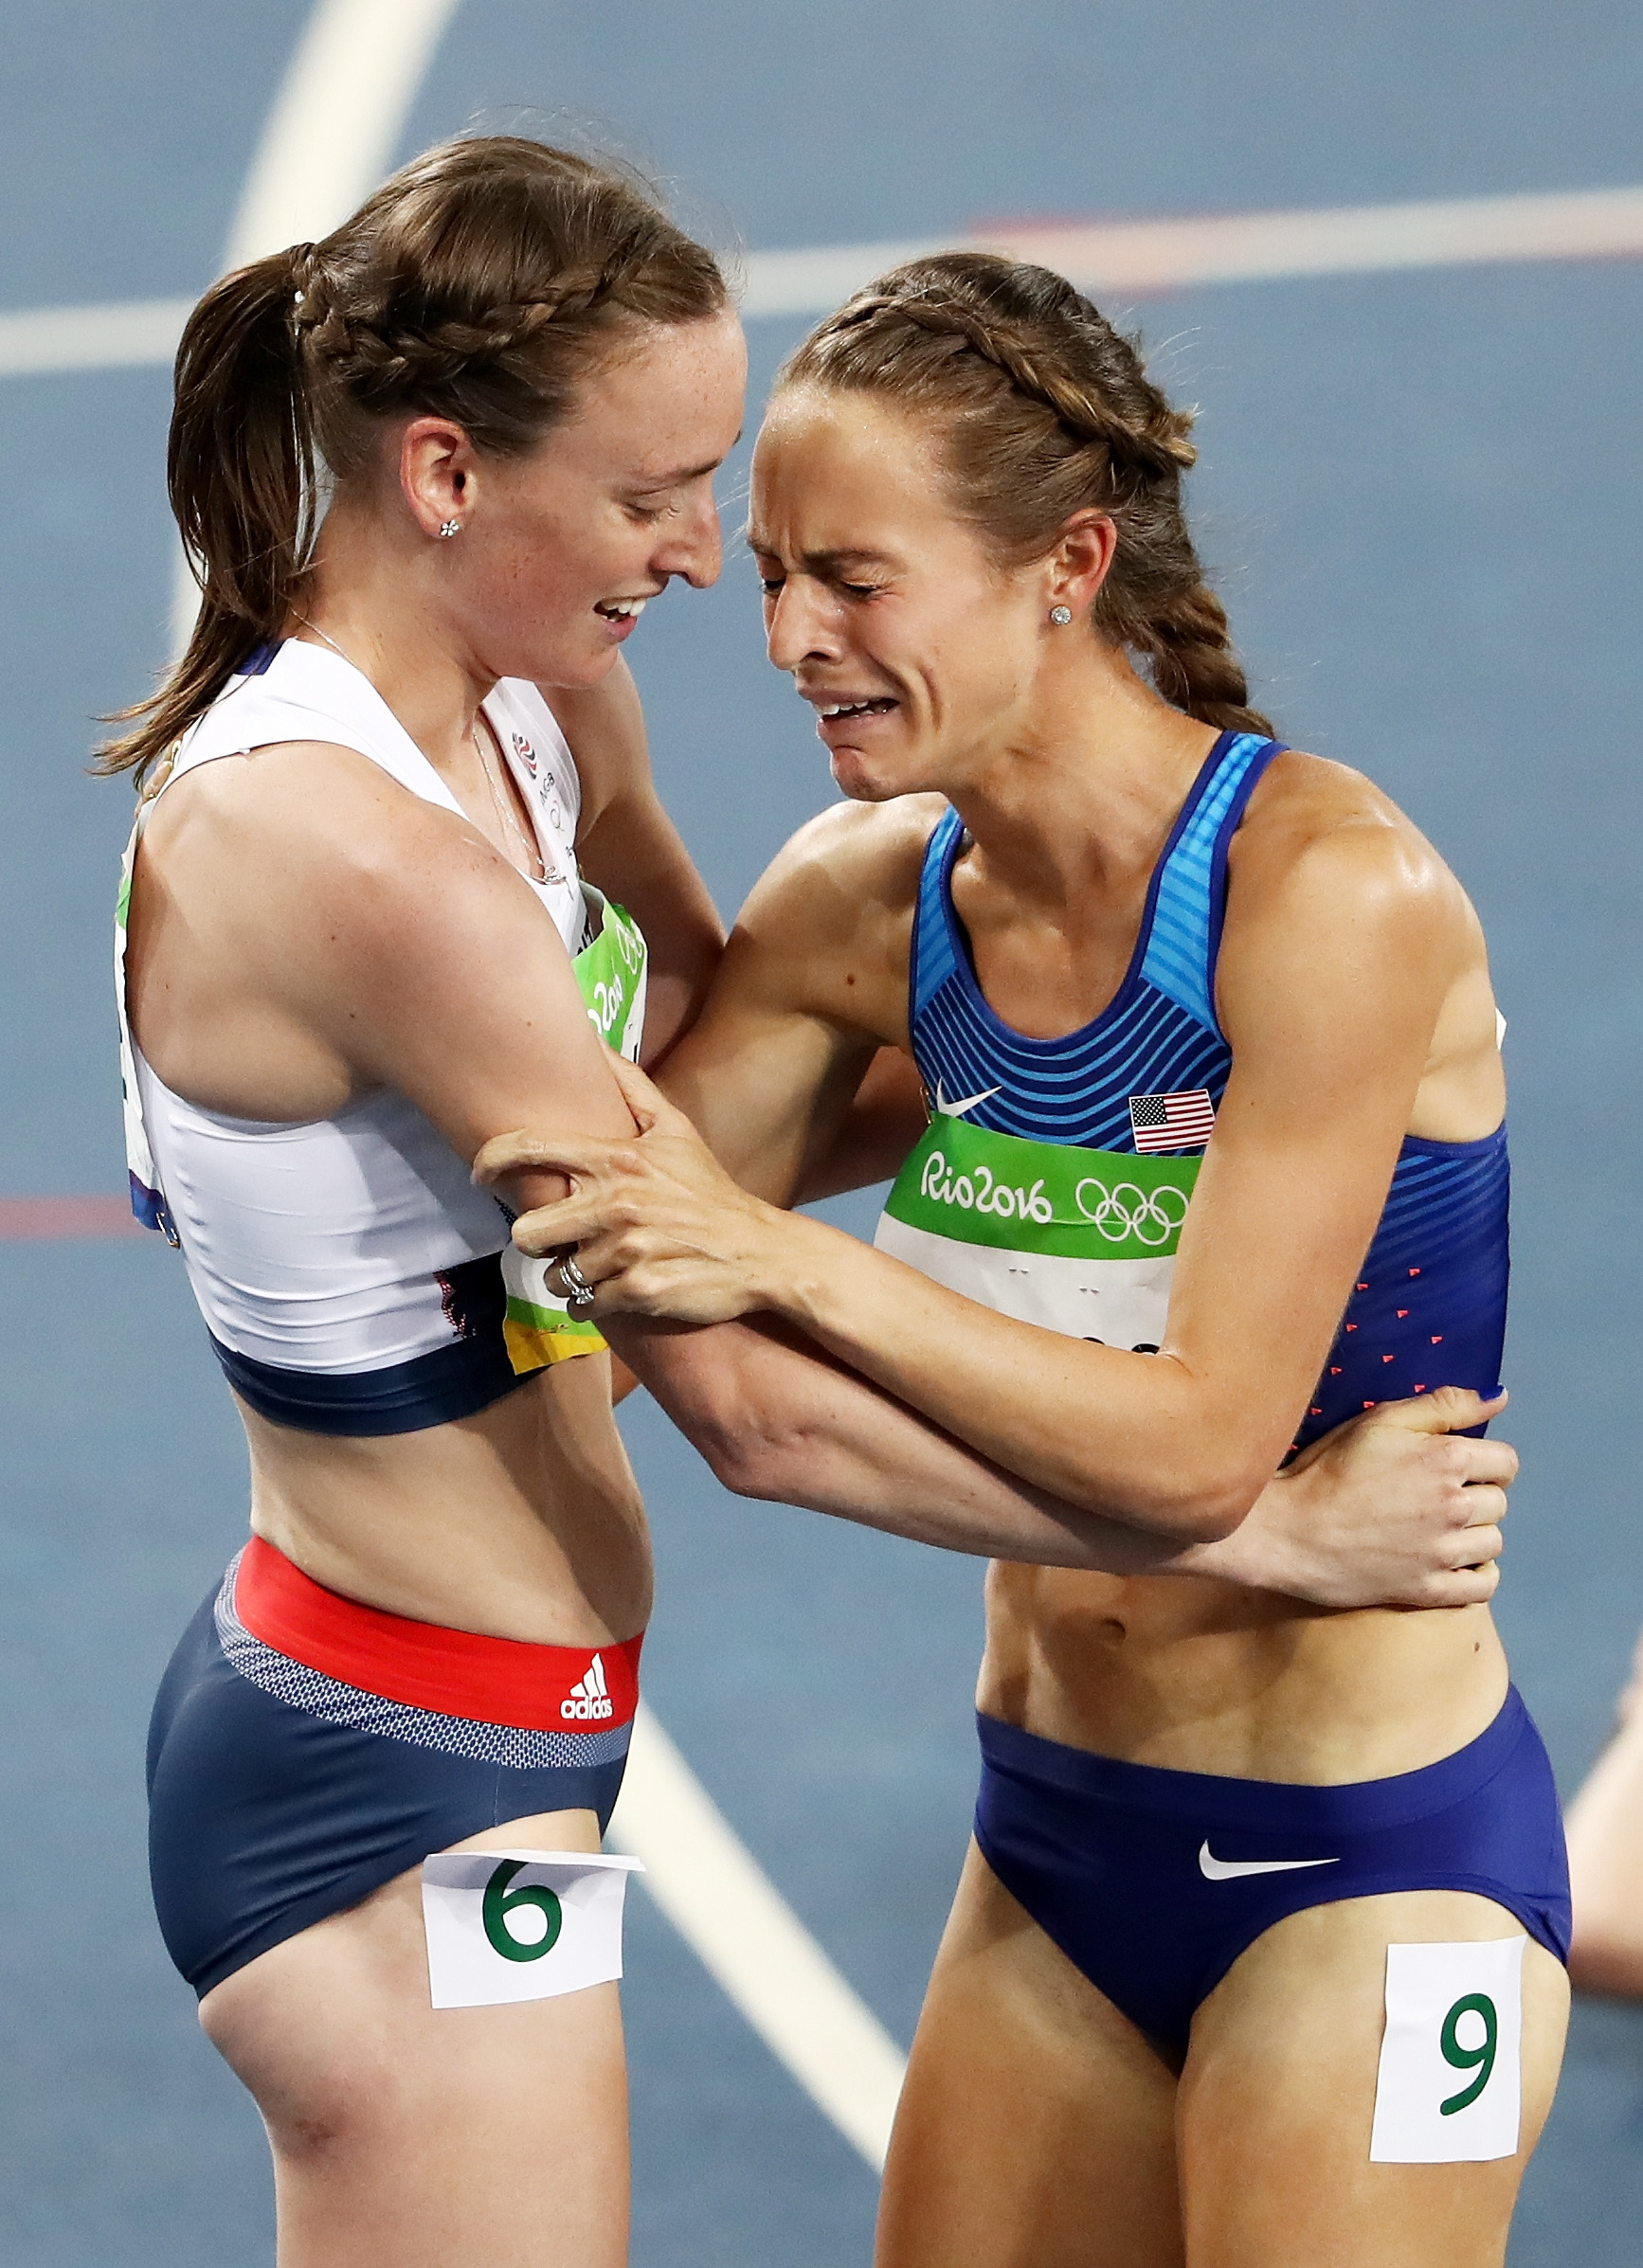 Laura Weightman of Great Britain hugs bronze medalist Jenny Simpson of the United States after the Women's 1500m Final on Day 11 of the Rio 2016 Olympic Games at the Olympic Stadium on August 16, 2016 in Rio de Janeiro, Brazil. (credit: Alexander Hassenstein/Getty Images)